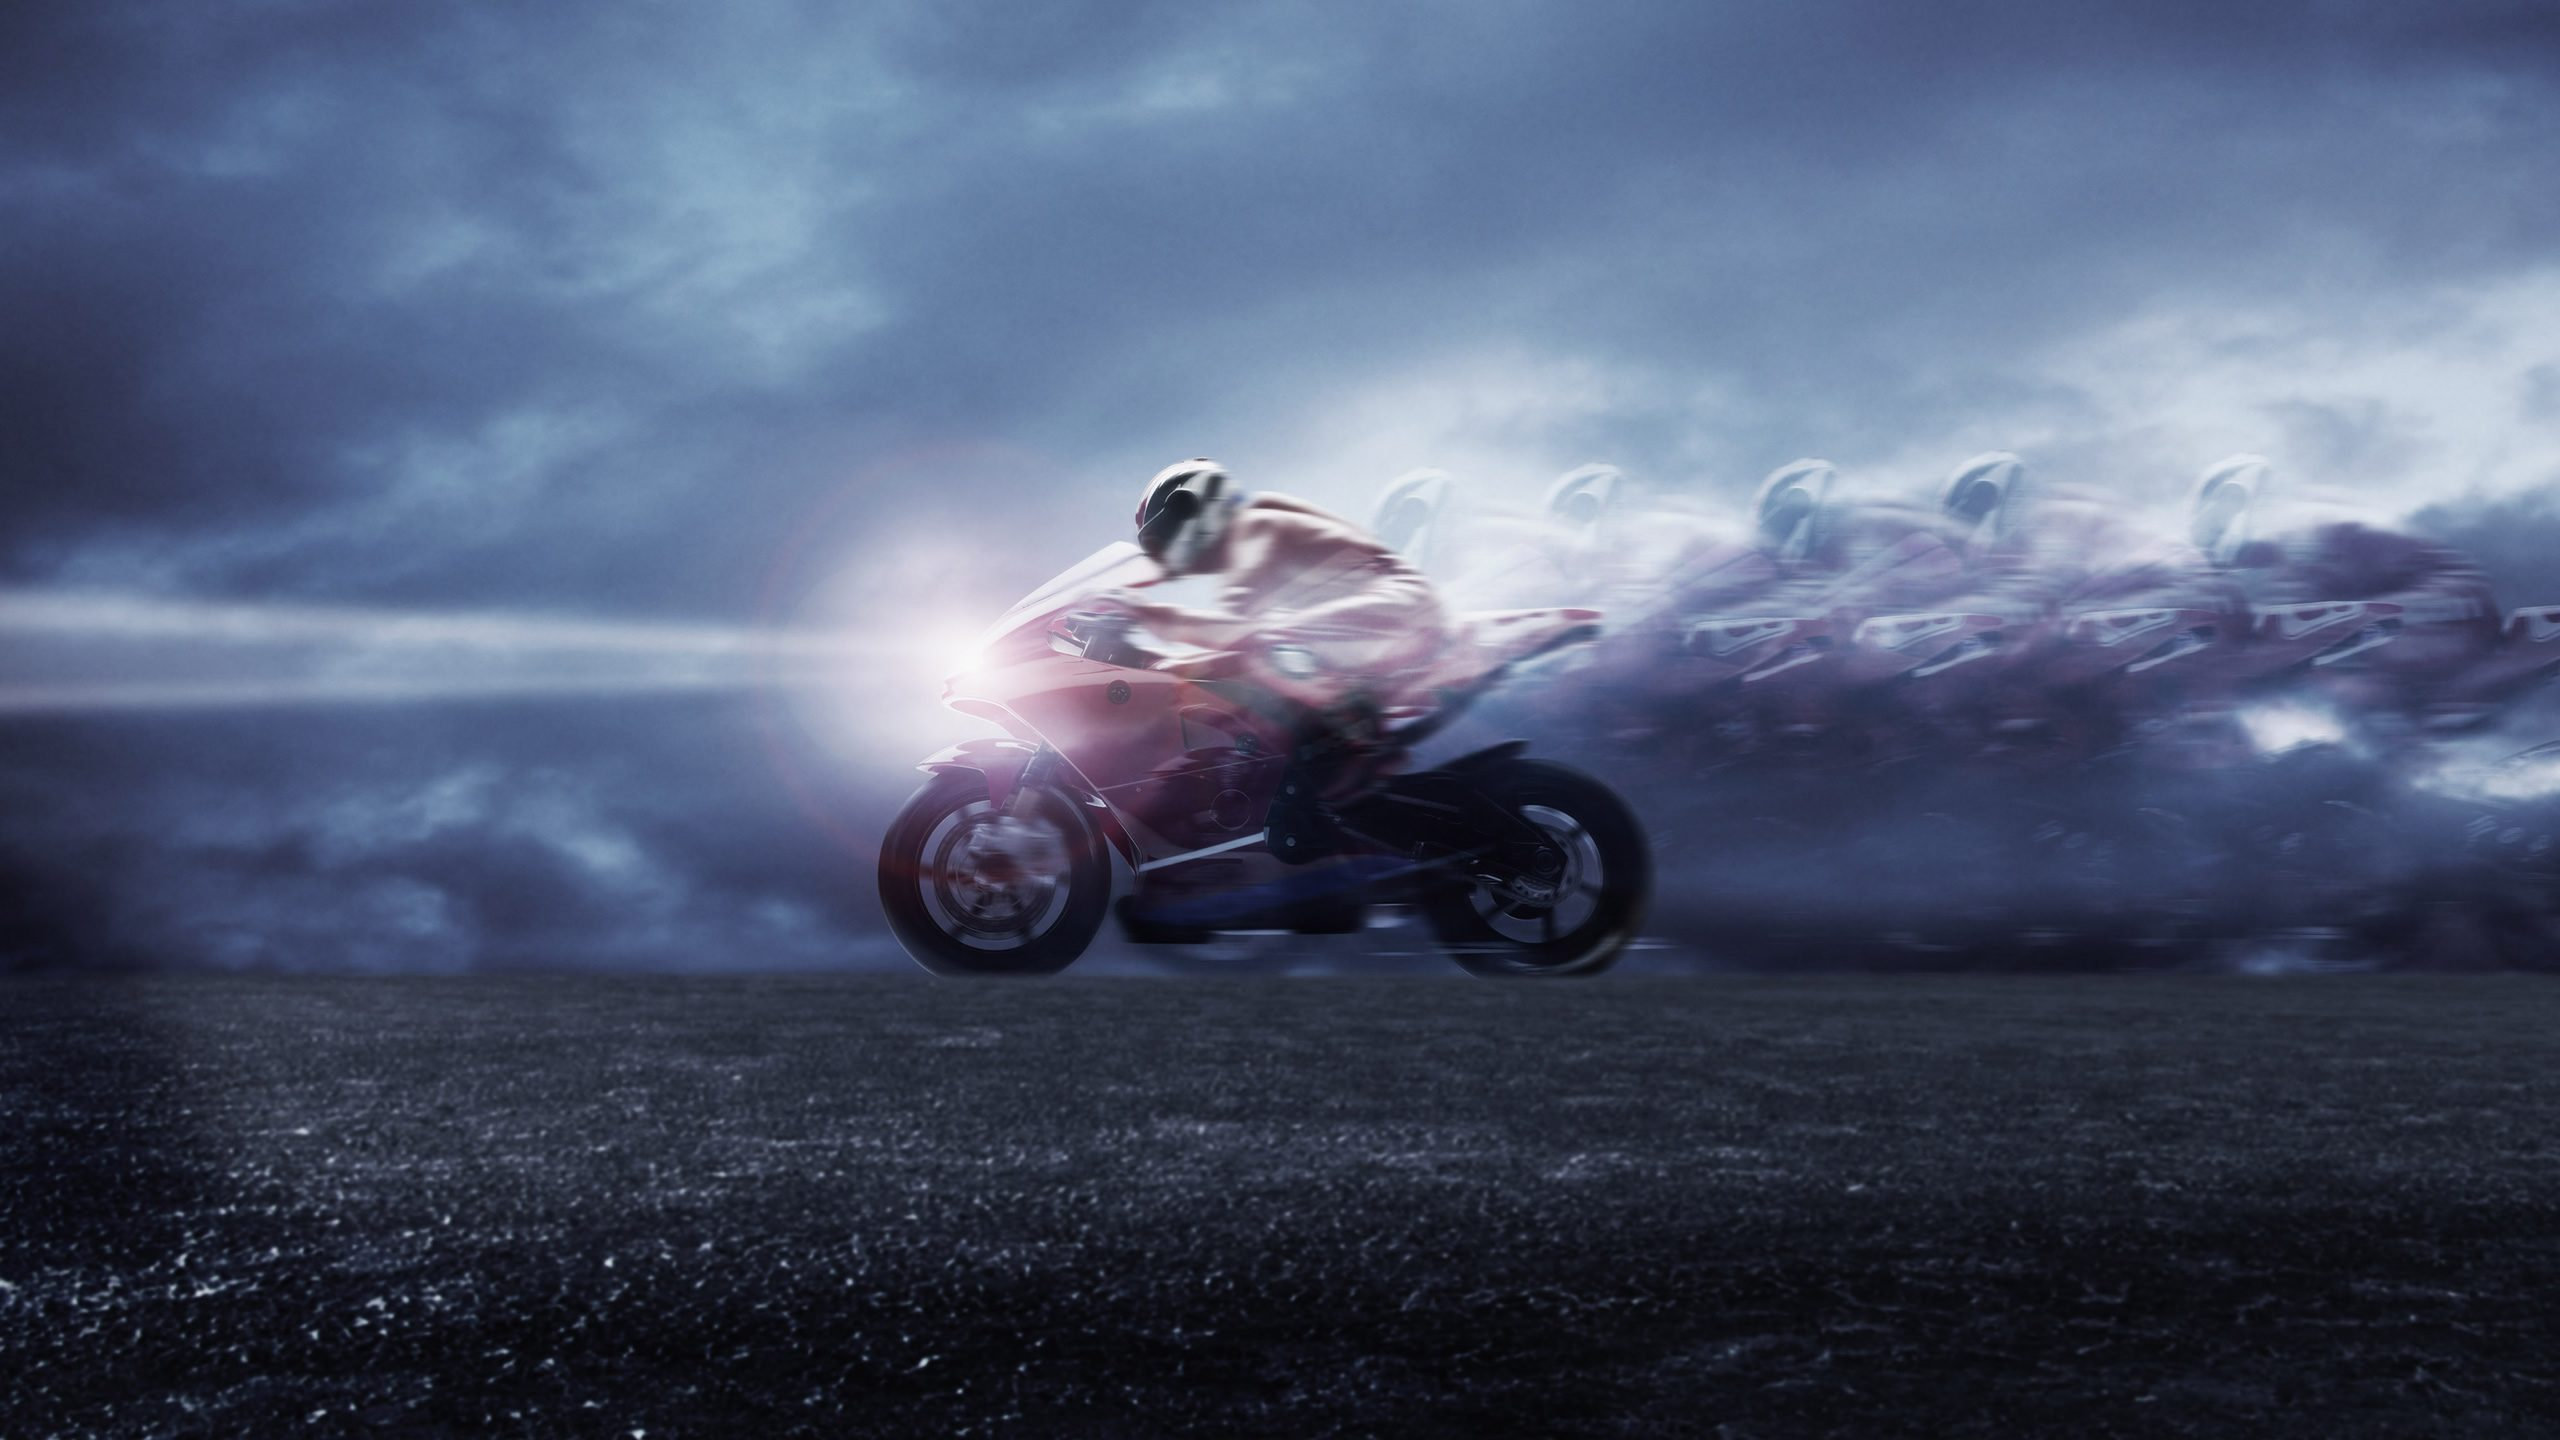 Image: Bike, racer, speed, light, sky, road